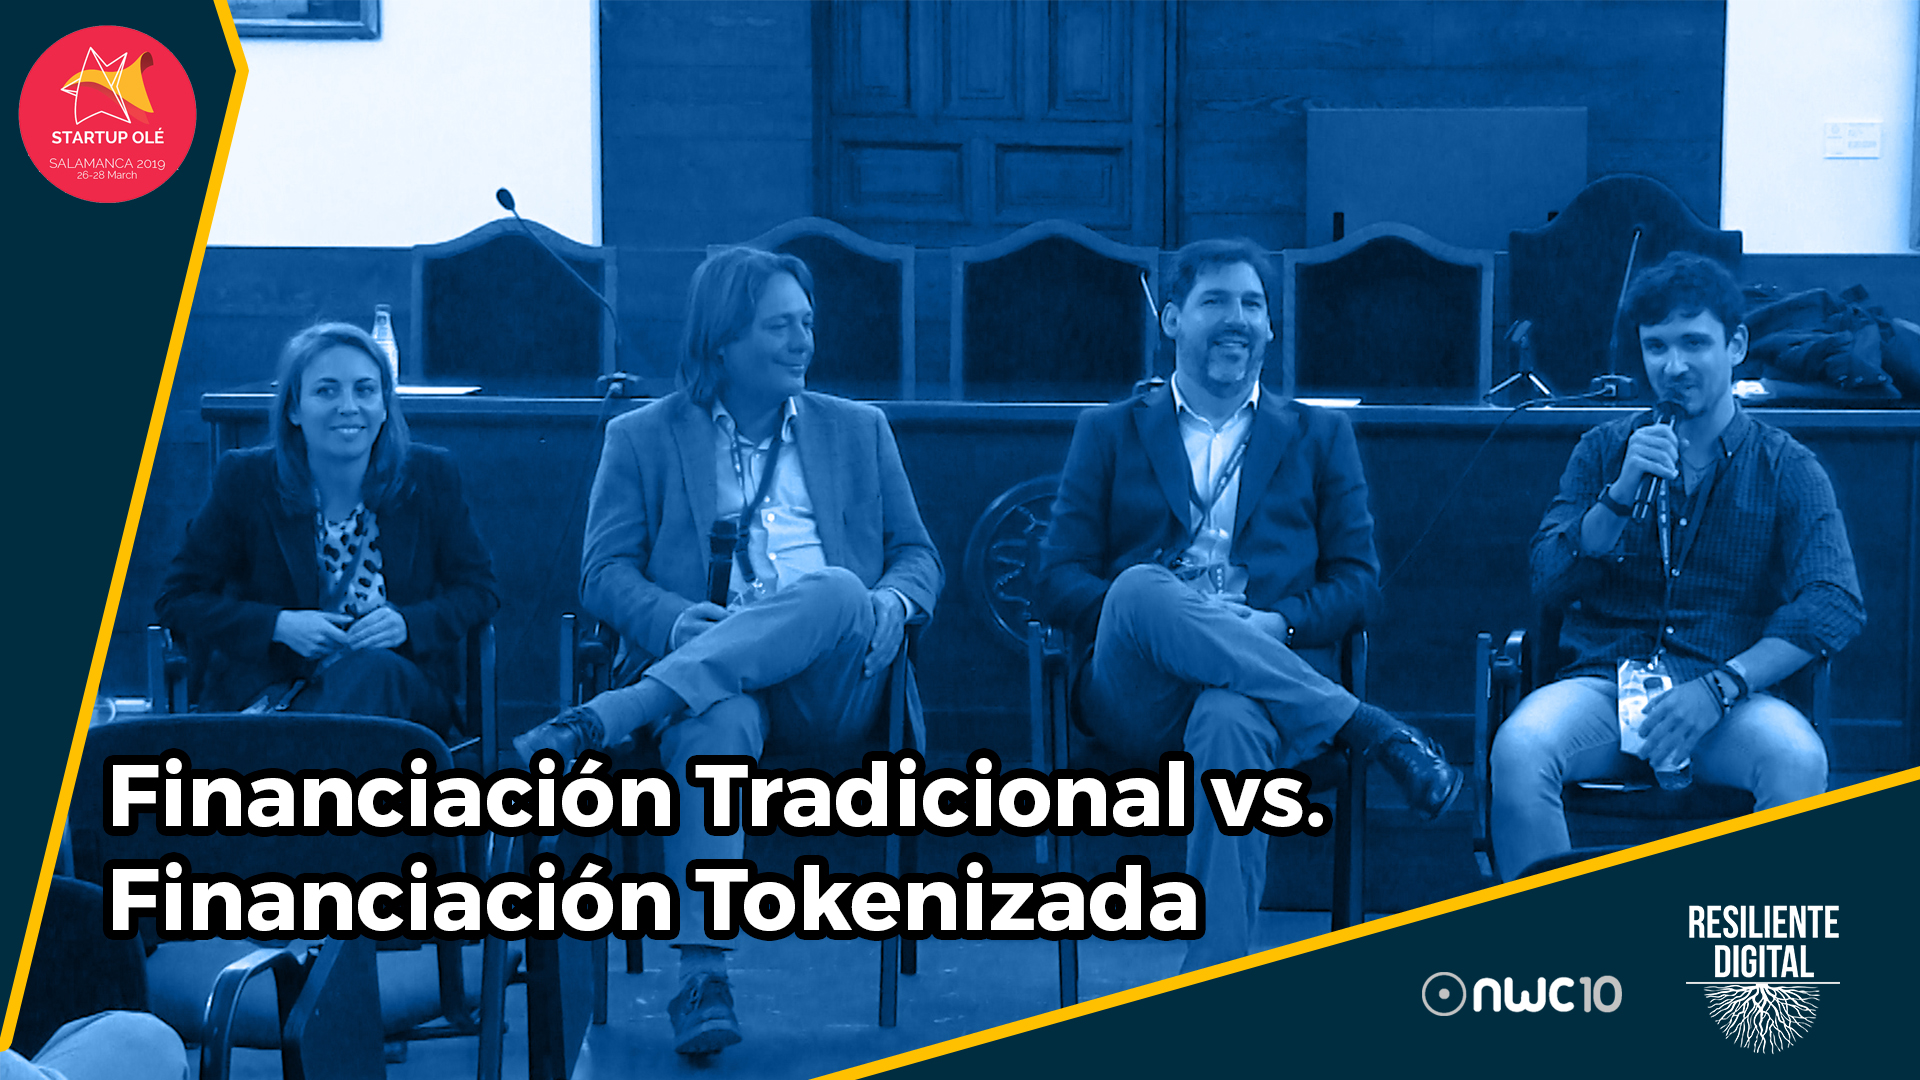 Financiación Tradicional vs Financiación Tokenizada